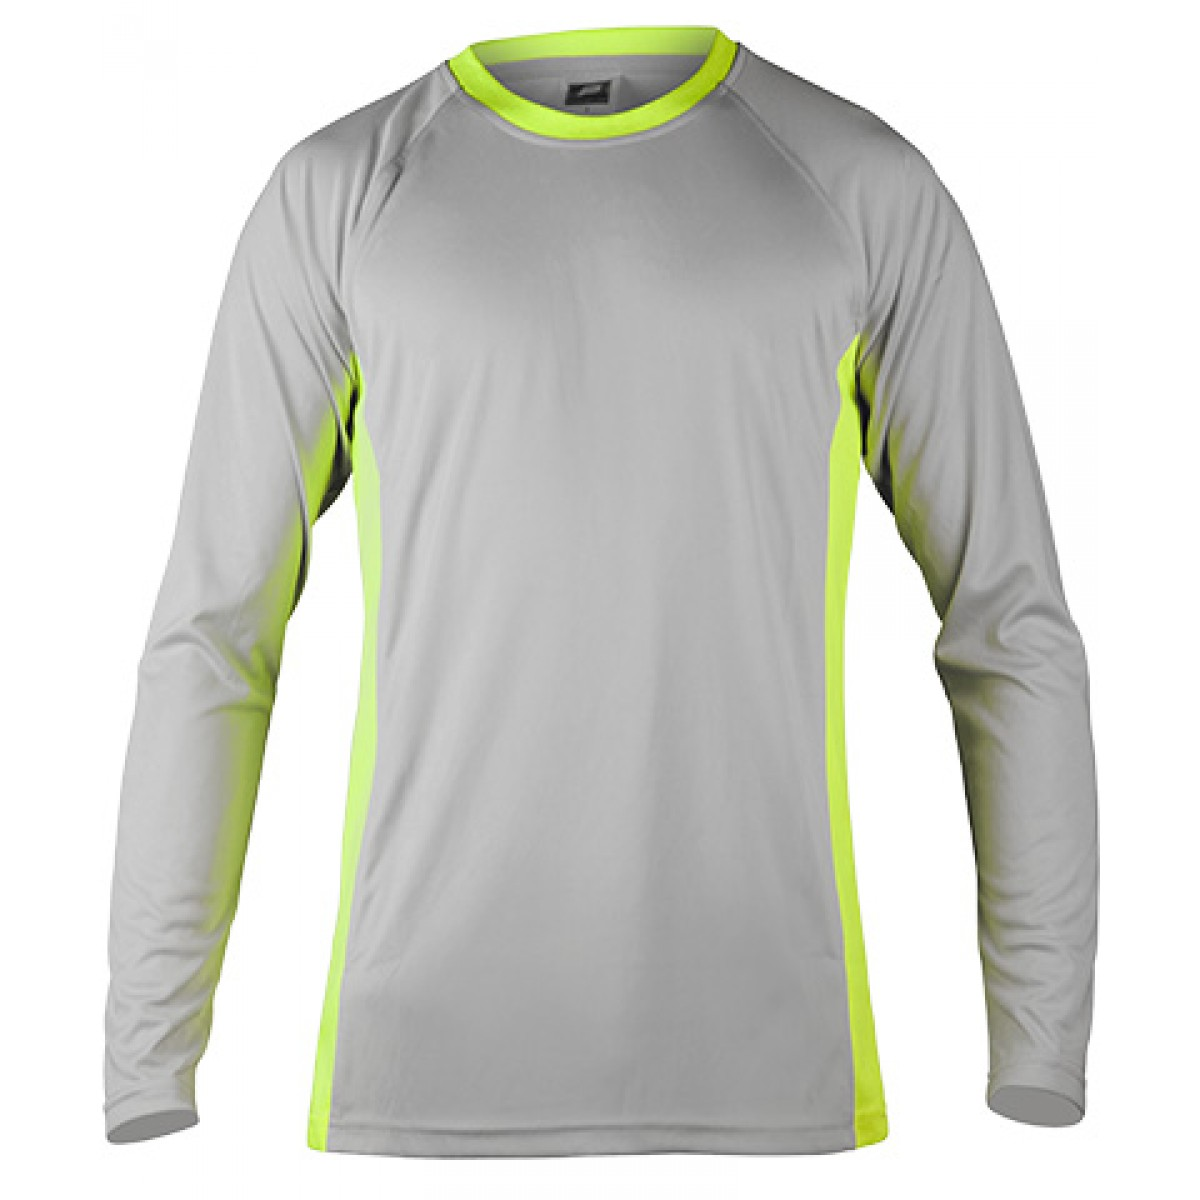 Long Sleeves Performance With Side Insert-Gray/Green-XS